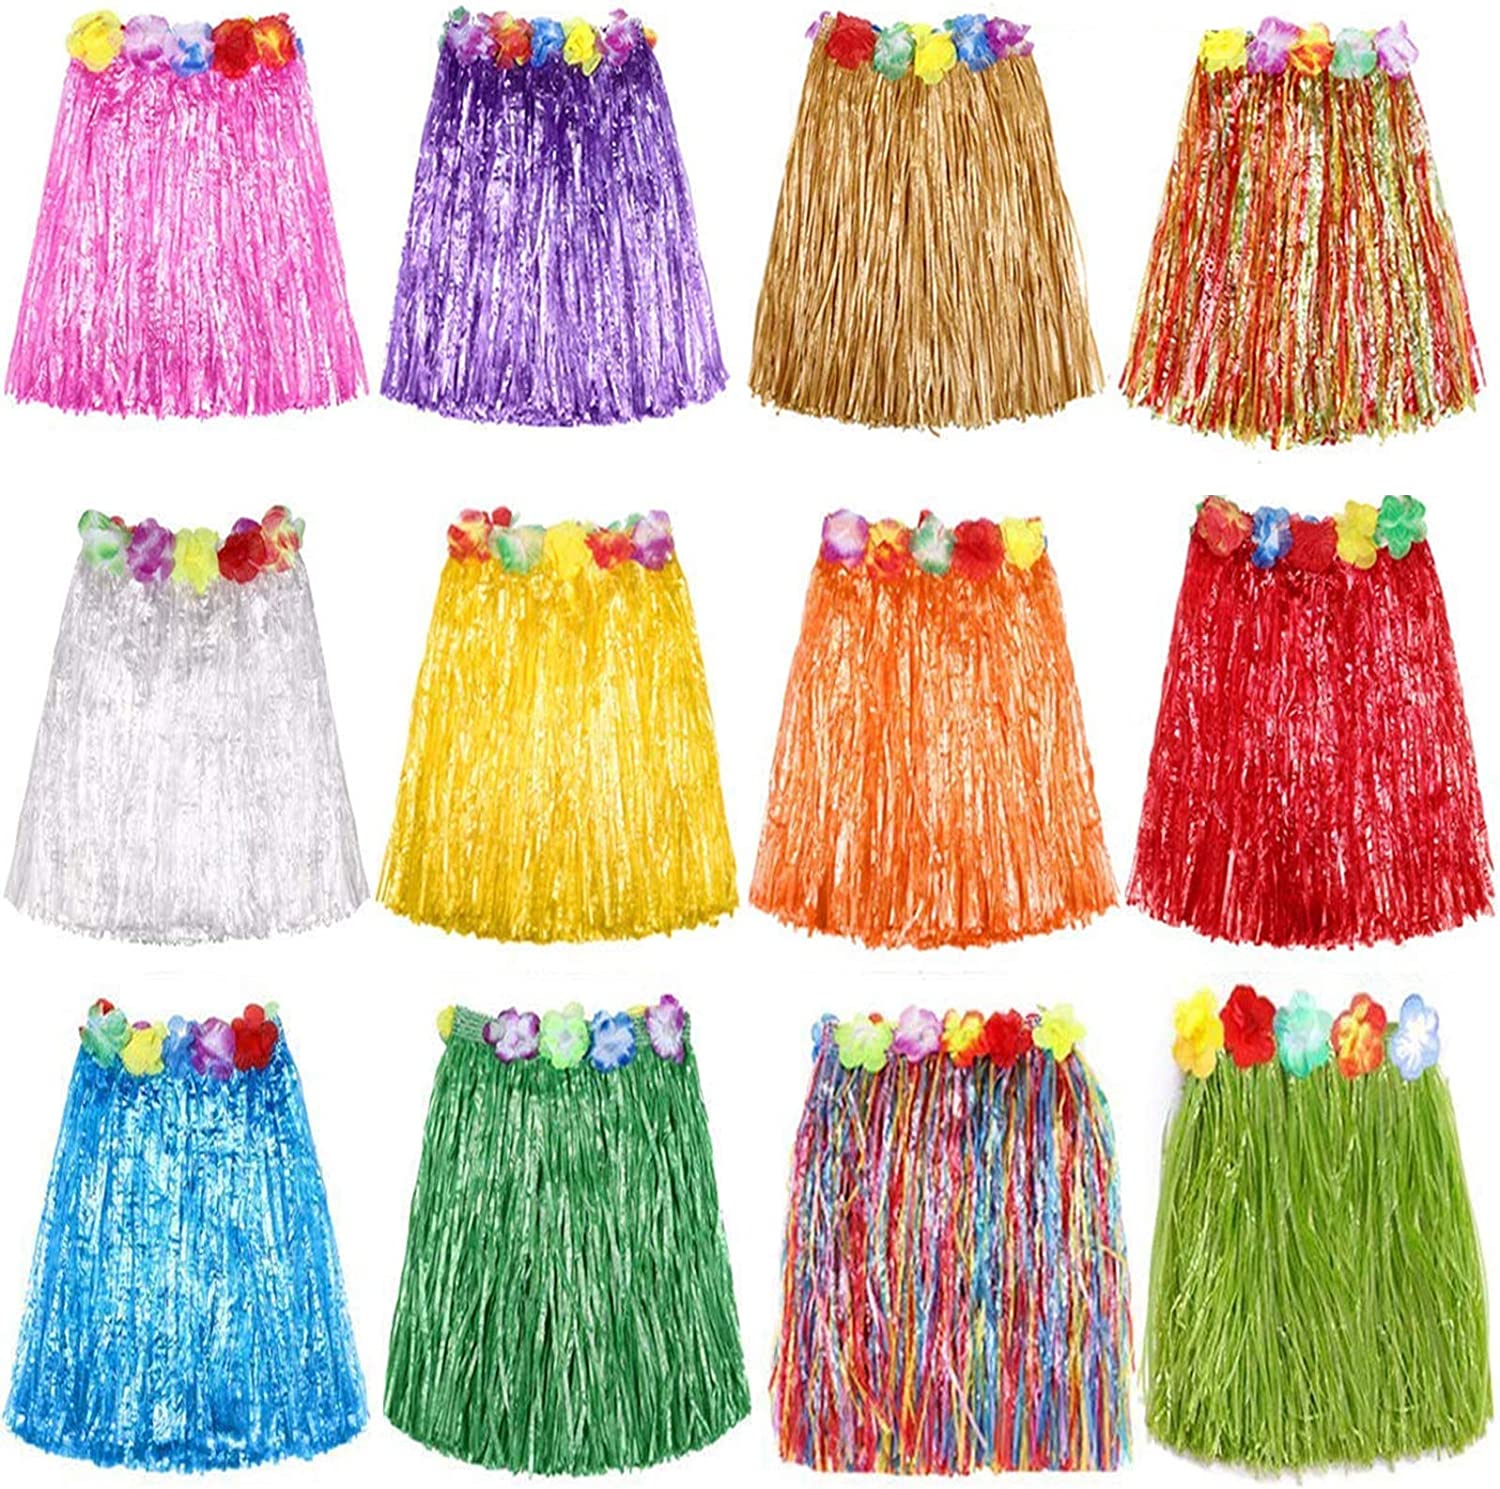 Hajoyful Grass Skirt Hawaiian Luau Hula Skirts Party Decorations Favors Supplies Multicolor Grass Skirts for Adult Elastic Hibiscus Flowers Tropical Hula Skirt for Party, Birthdays, Celebration 60CM 12 Pack, Multicolored, Large